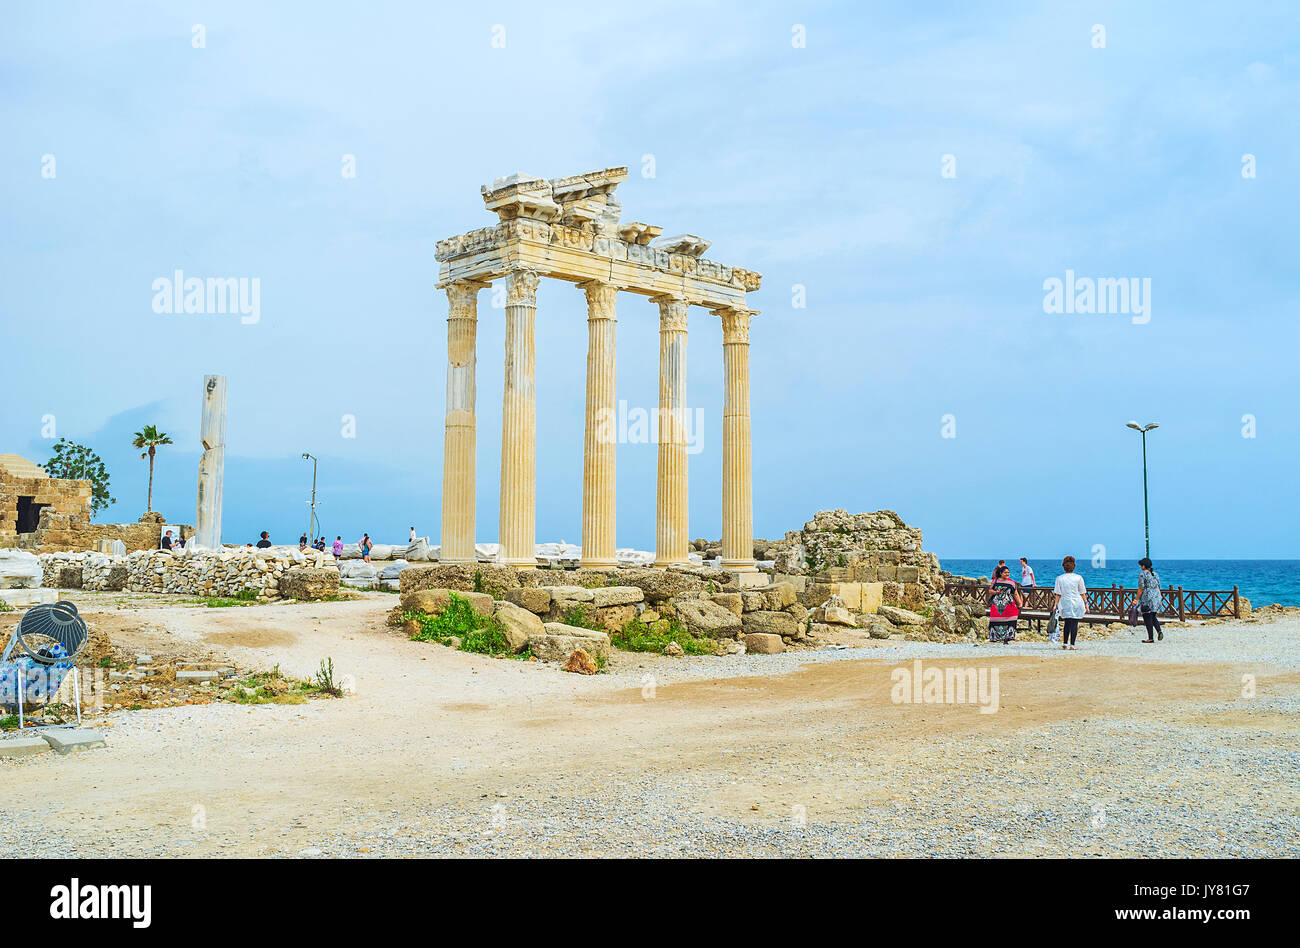 SIDE, TURKEY - MAY 8, 2017: Remains of the ancient Greek city of Side - the ruins of Apollo Temple on the coast of peninsula, on May 8 in Side, Turkey - Stock Image